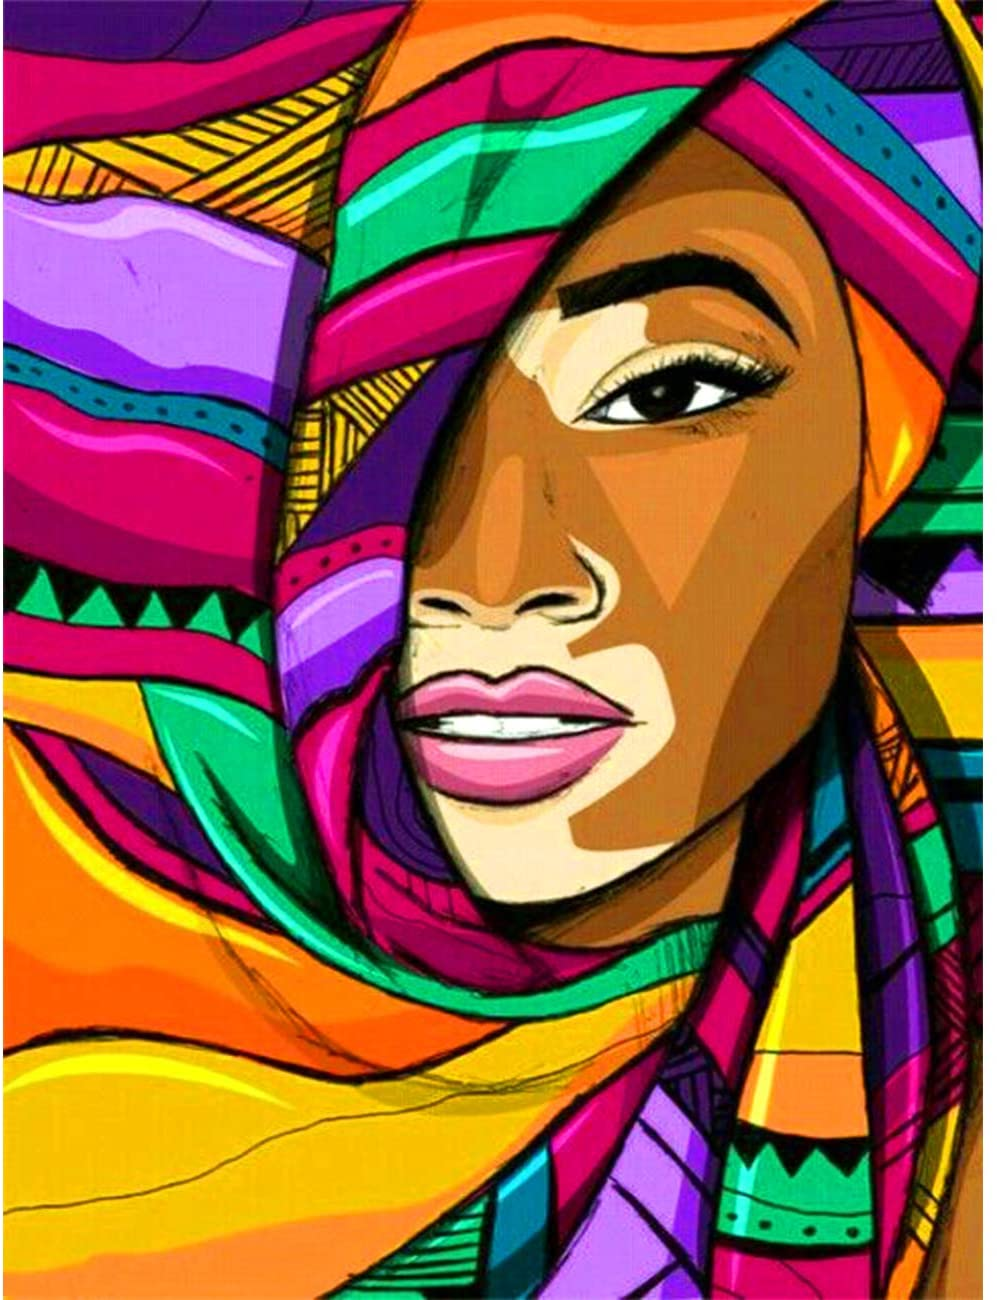 5D Diamond Painting Abstract Flower African Woman Face Full Drill by Number Kits, SKRYUIE DIY Rhinestone Pasted Paint with Diamond Set Arts Craft Decorations (12x16inch)